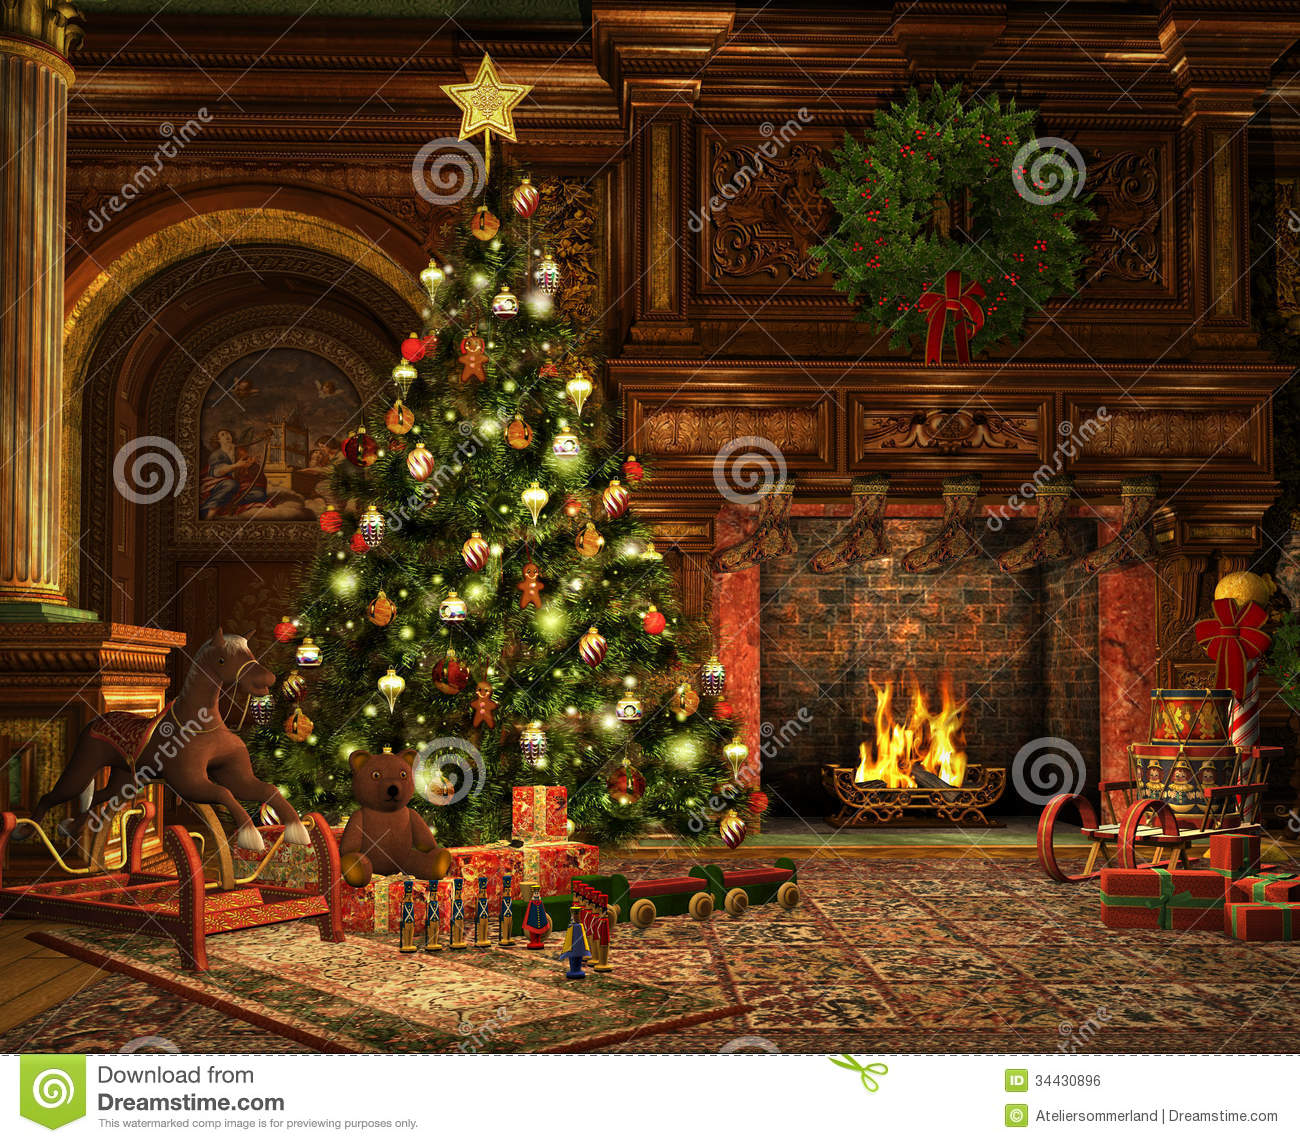 A Very Merry Christmas Royalty Free Stock Image Image